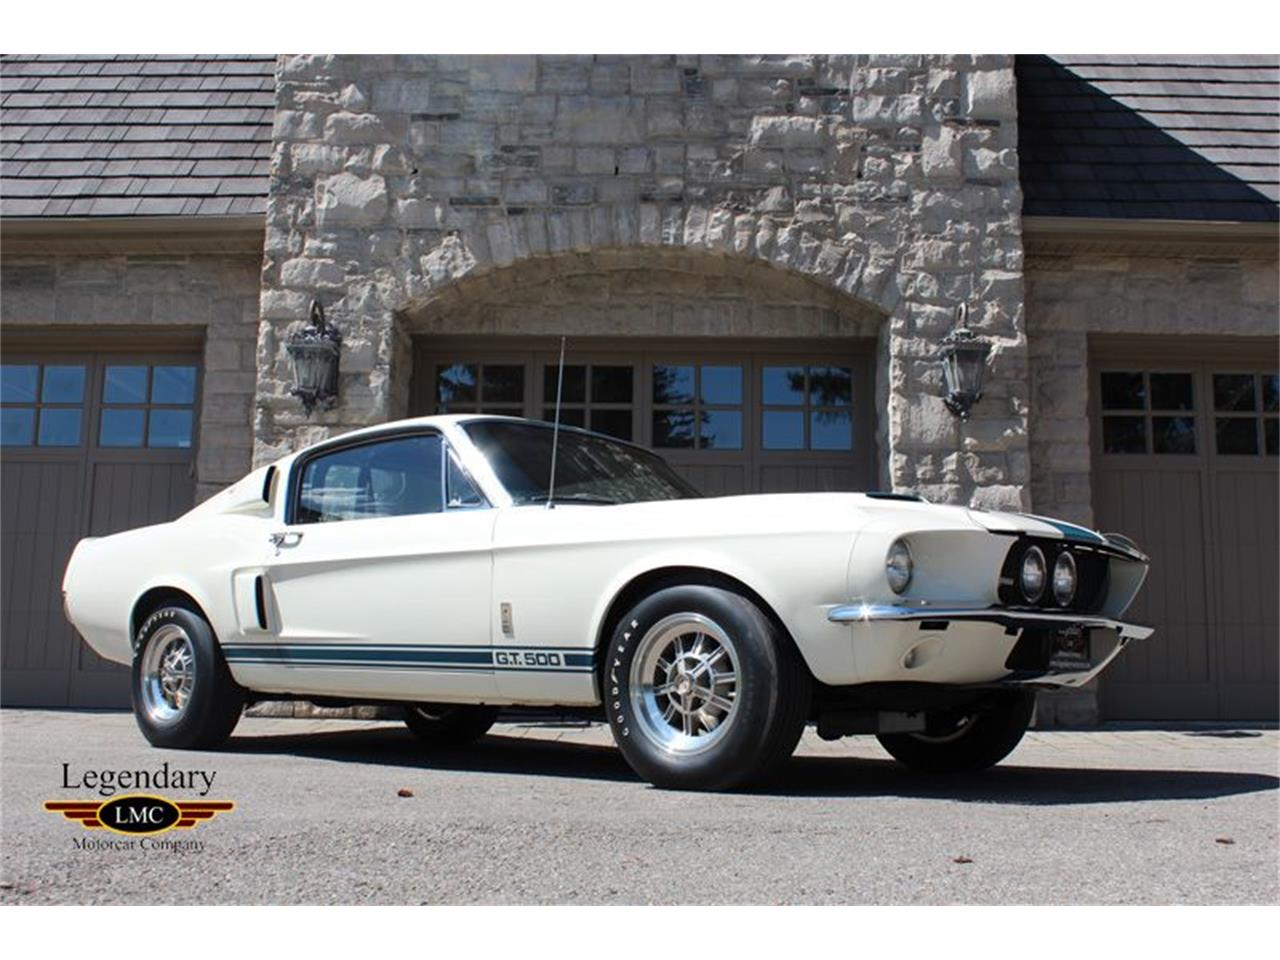 Large picture of 67 gt500 isbc